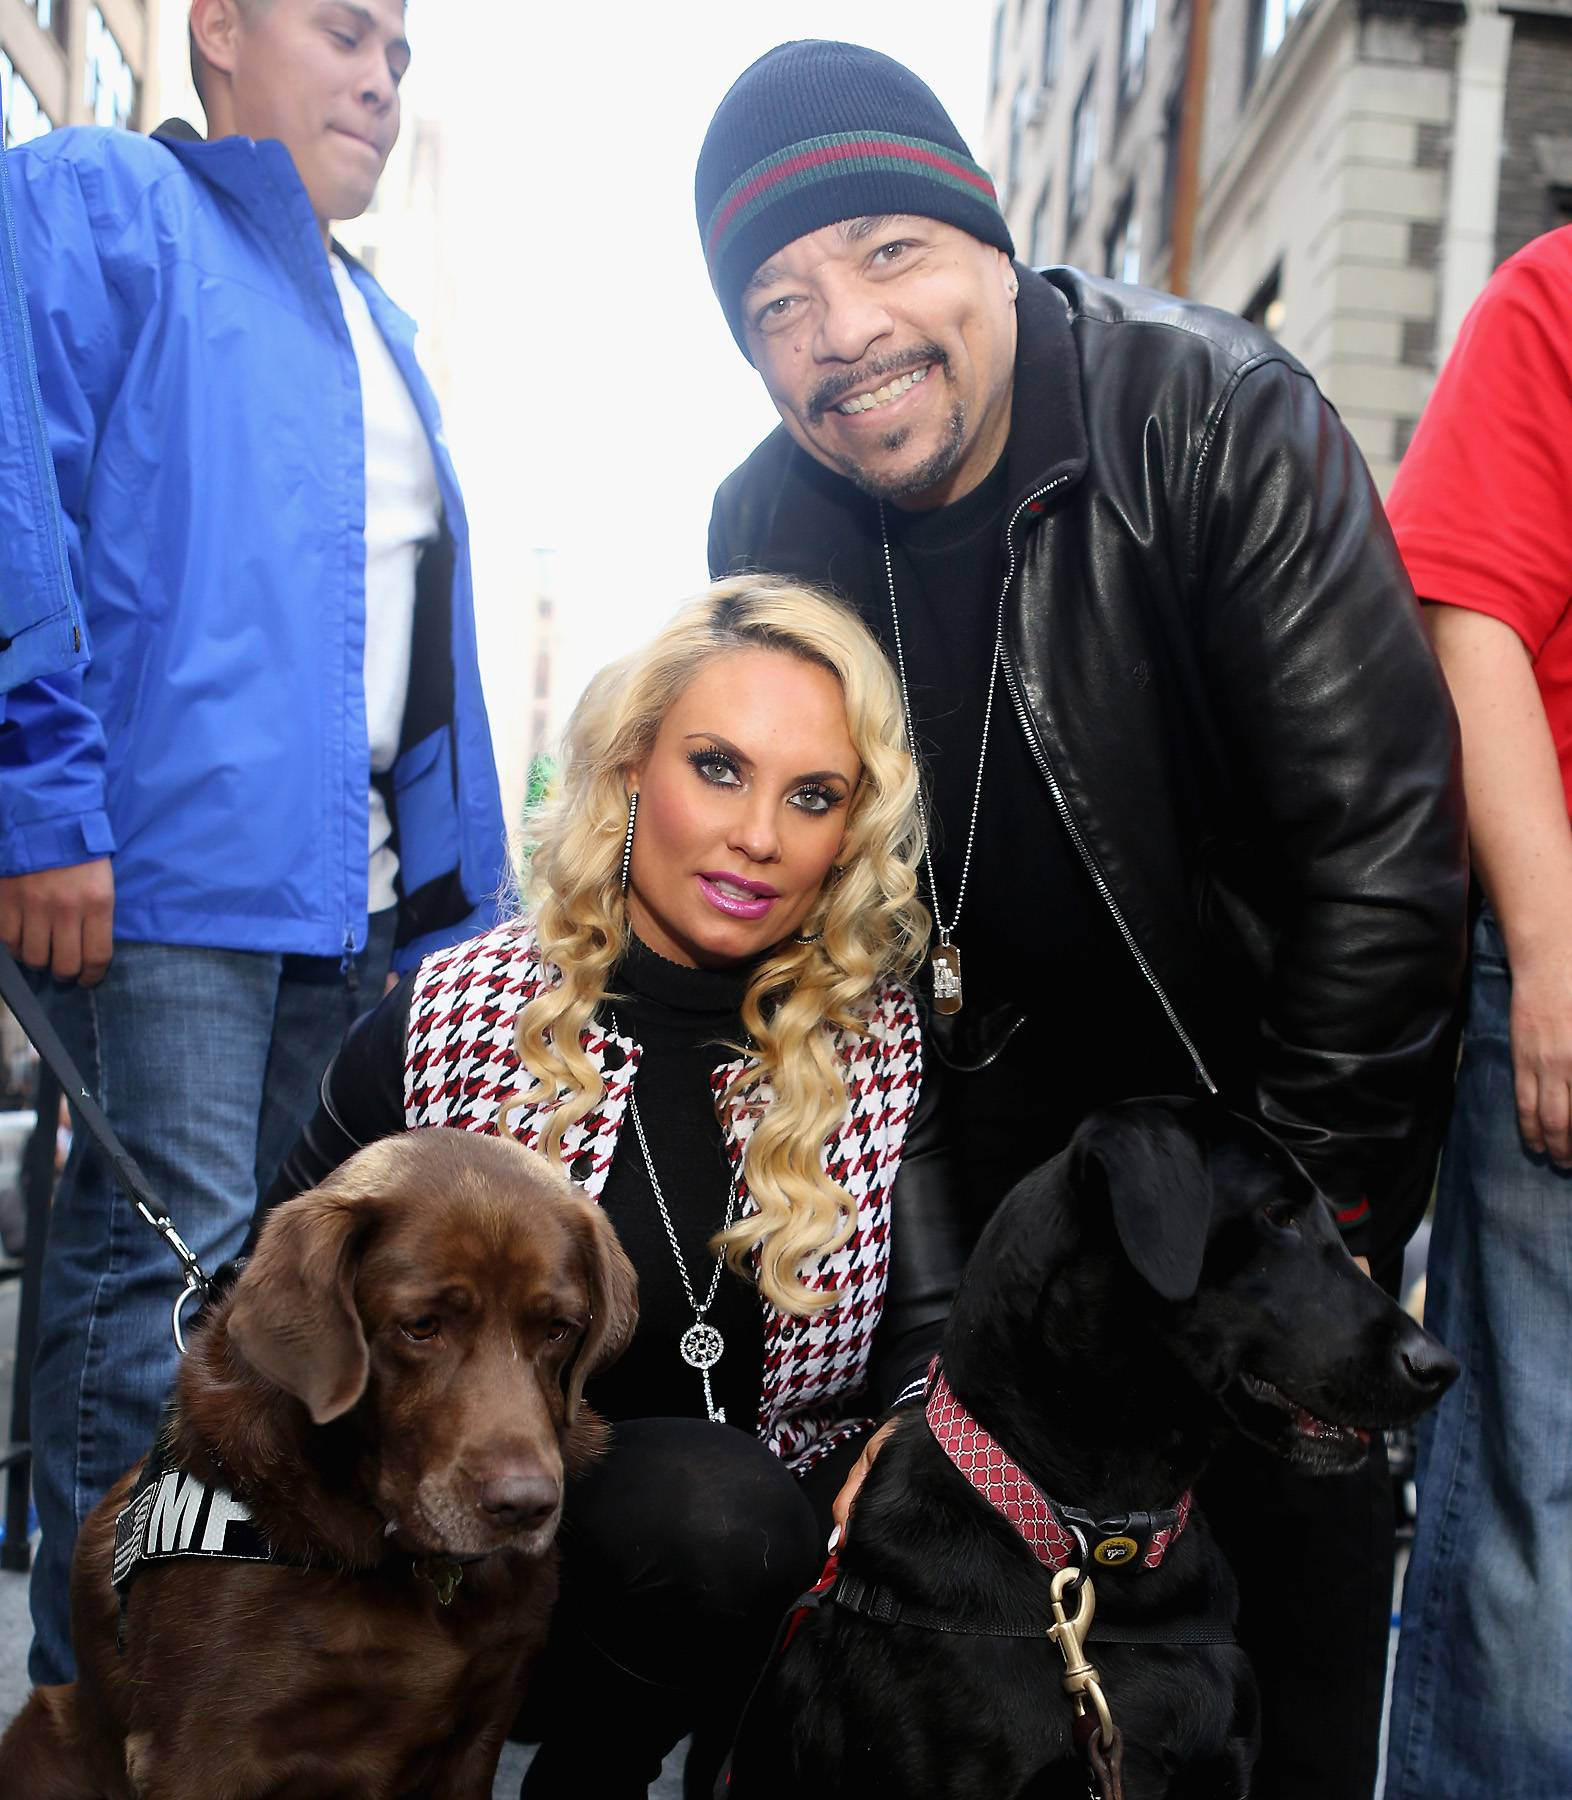 111214-celebs-out-ice-t-coco.jpg